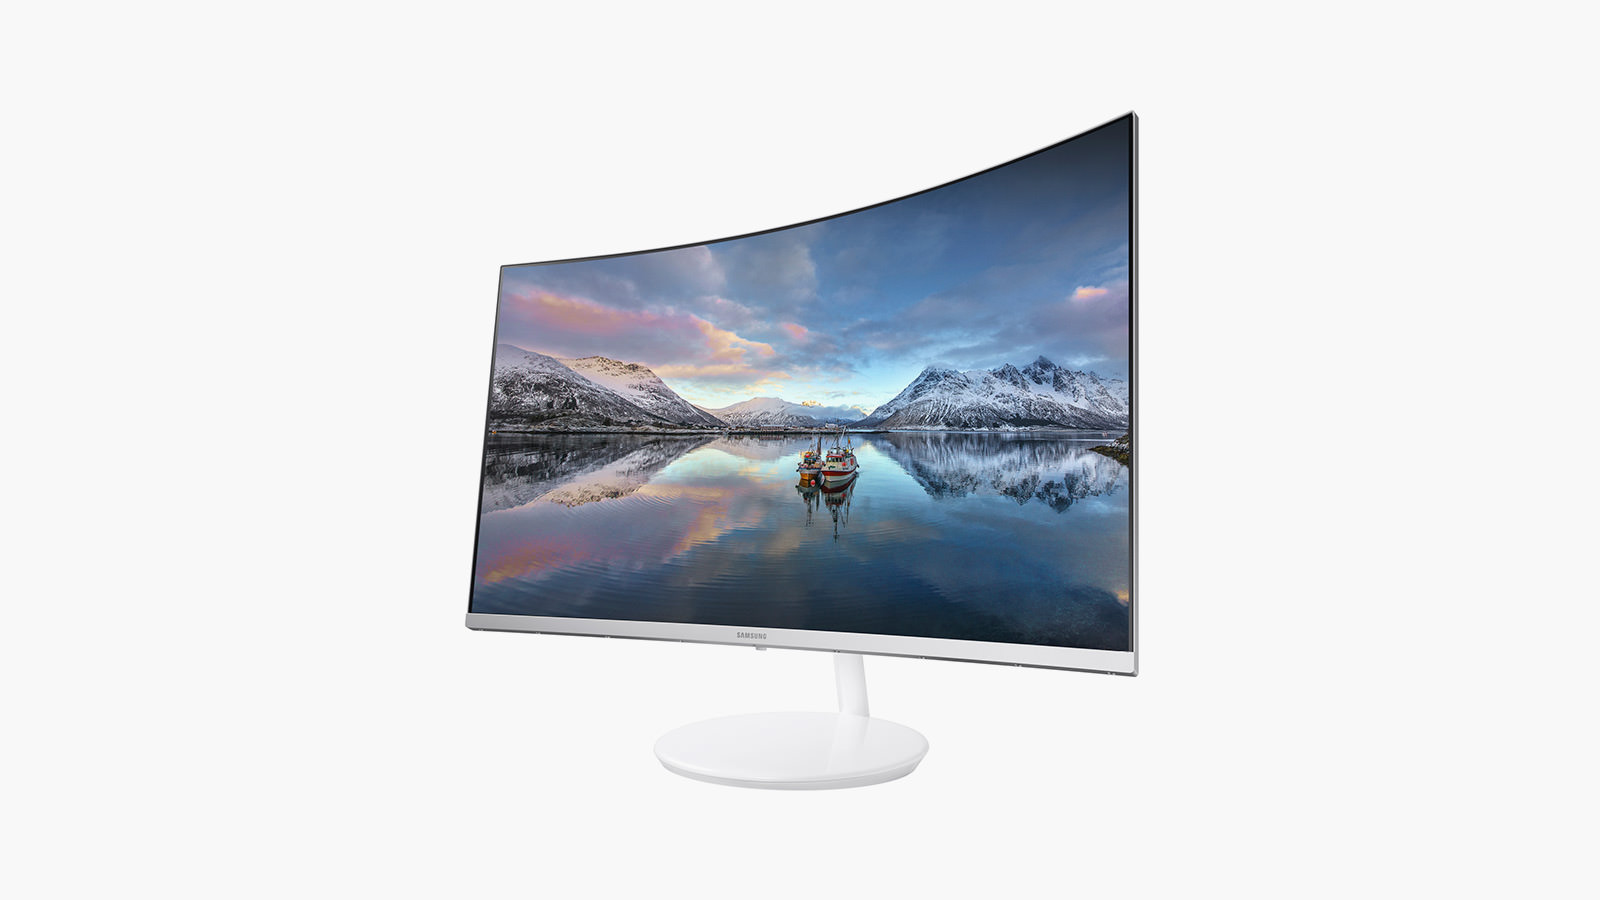 Samsung Ch711 Quantum Dot Curved Monitor Imboldn